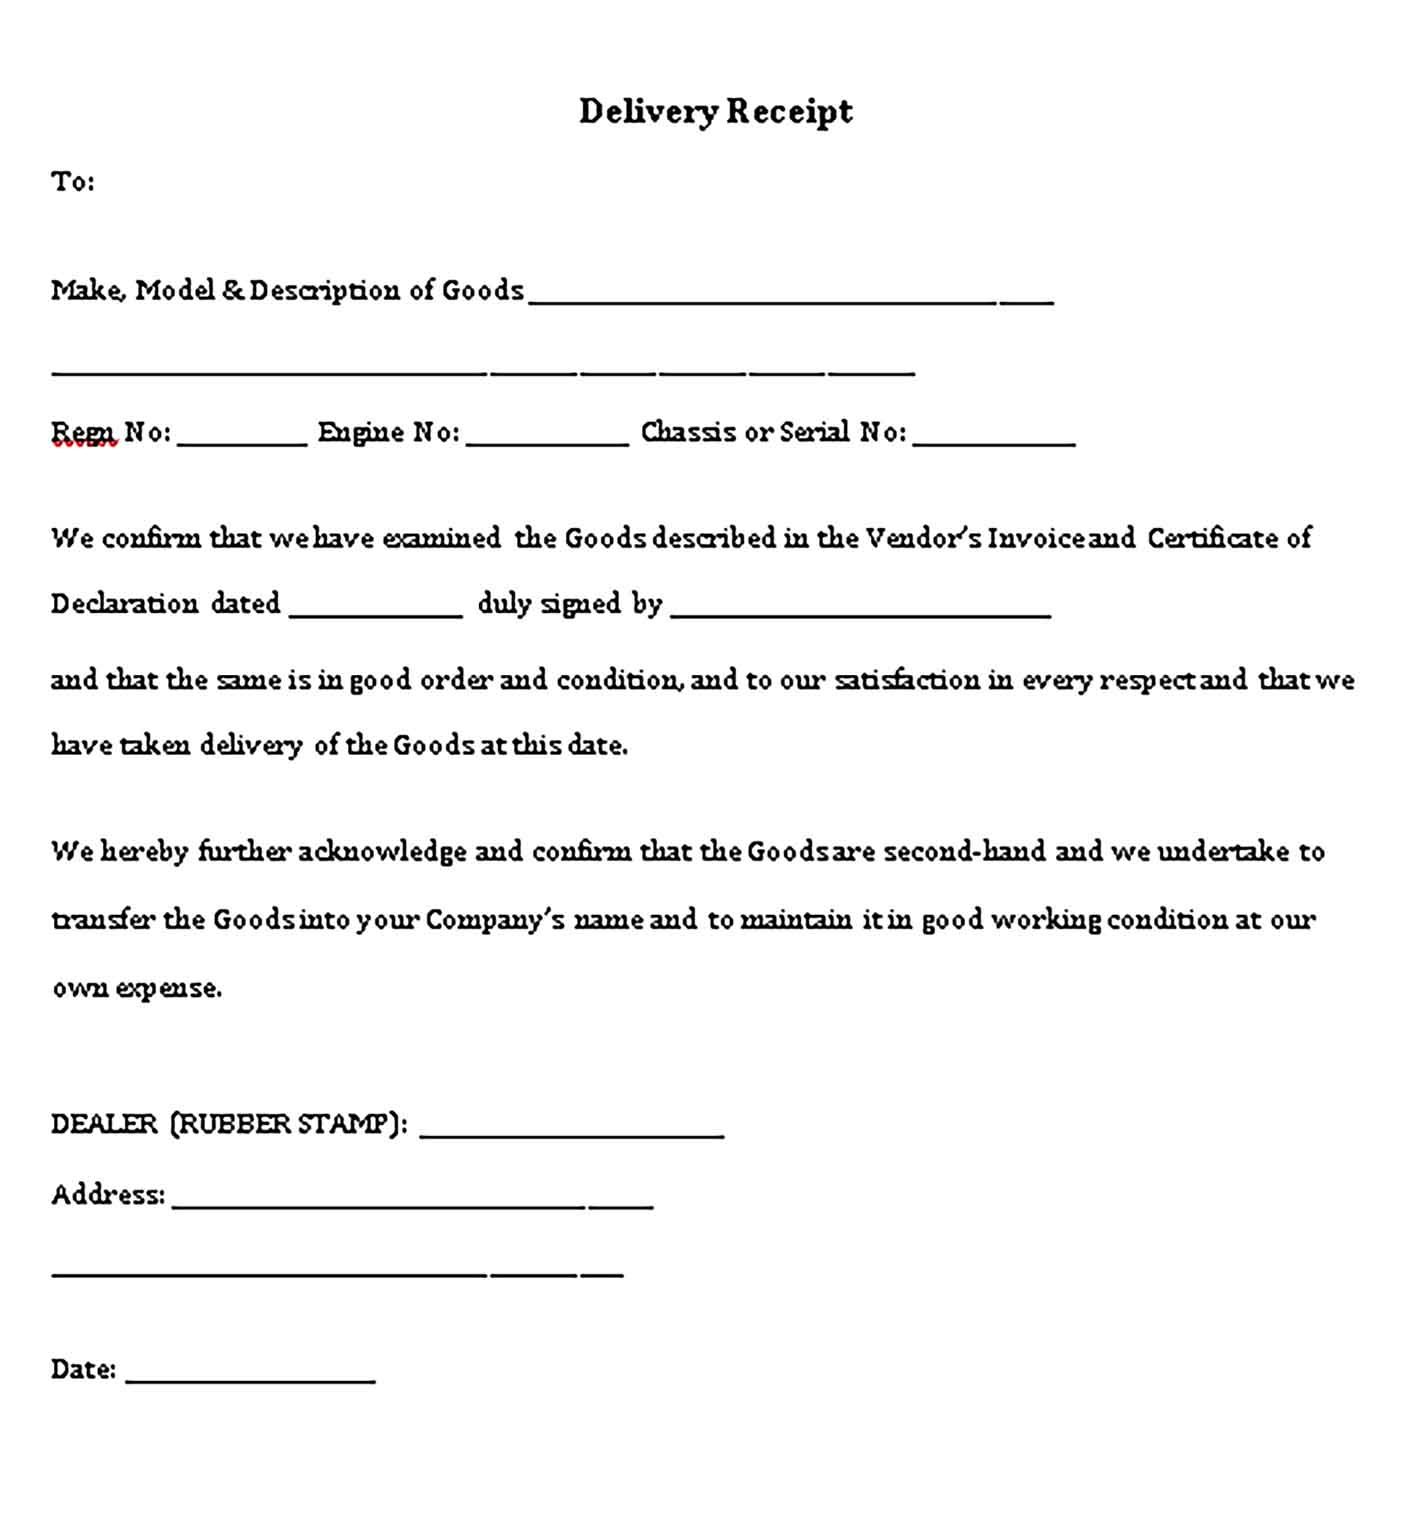 Delivery Receipt Template Printable